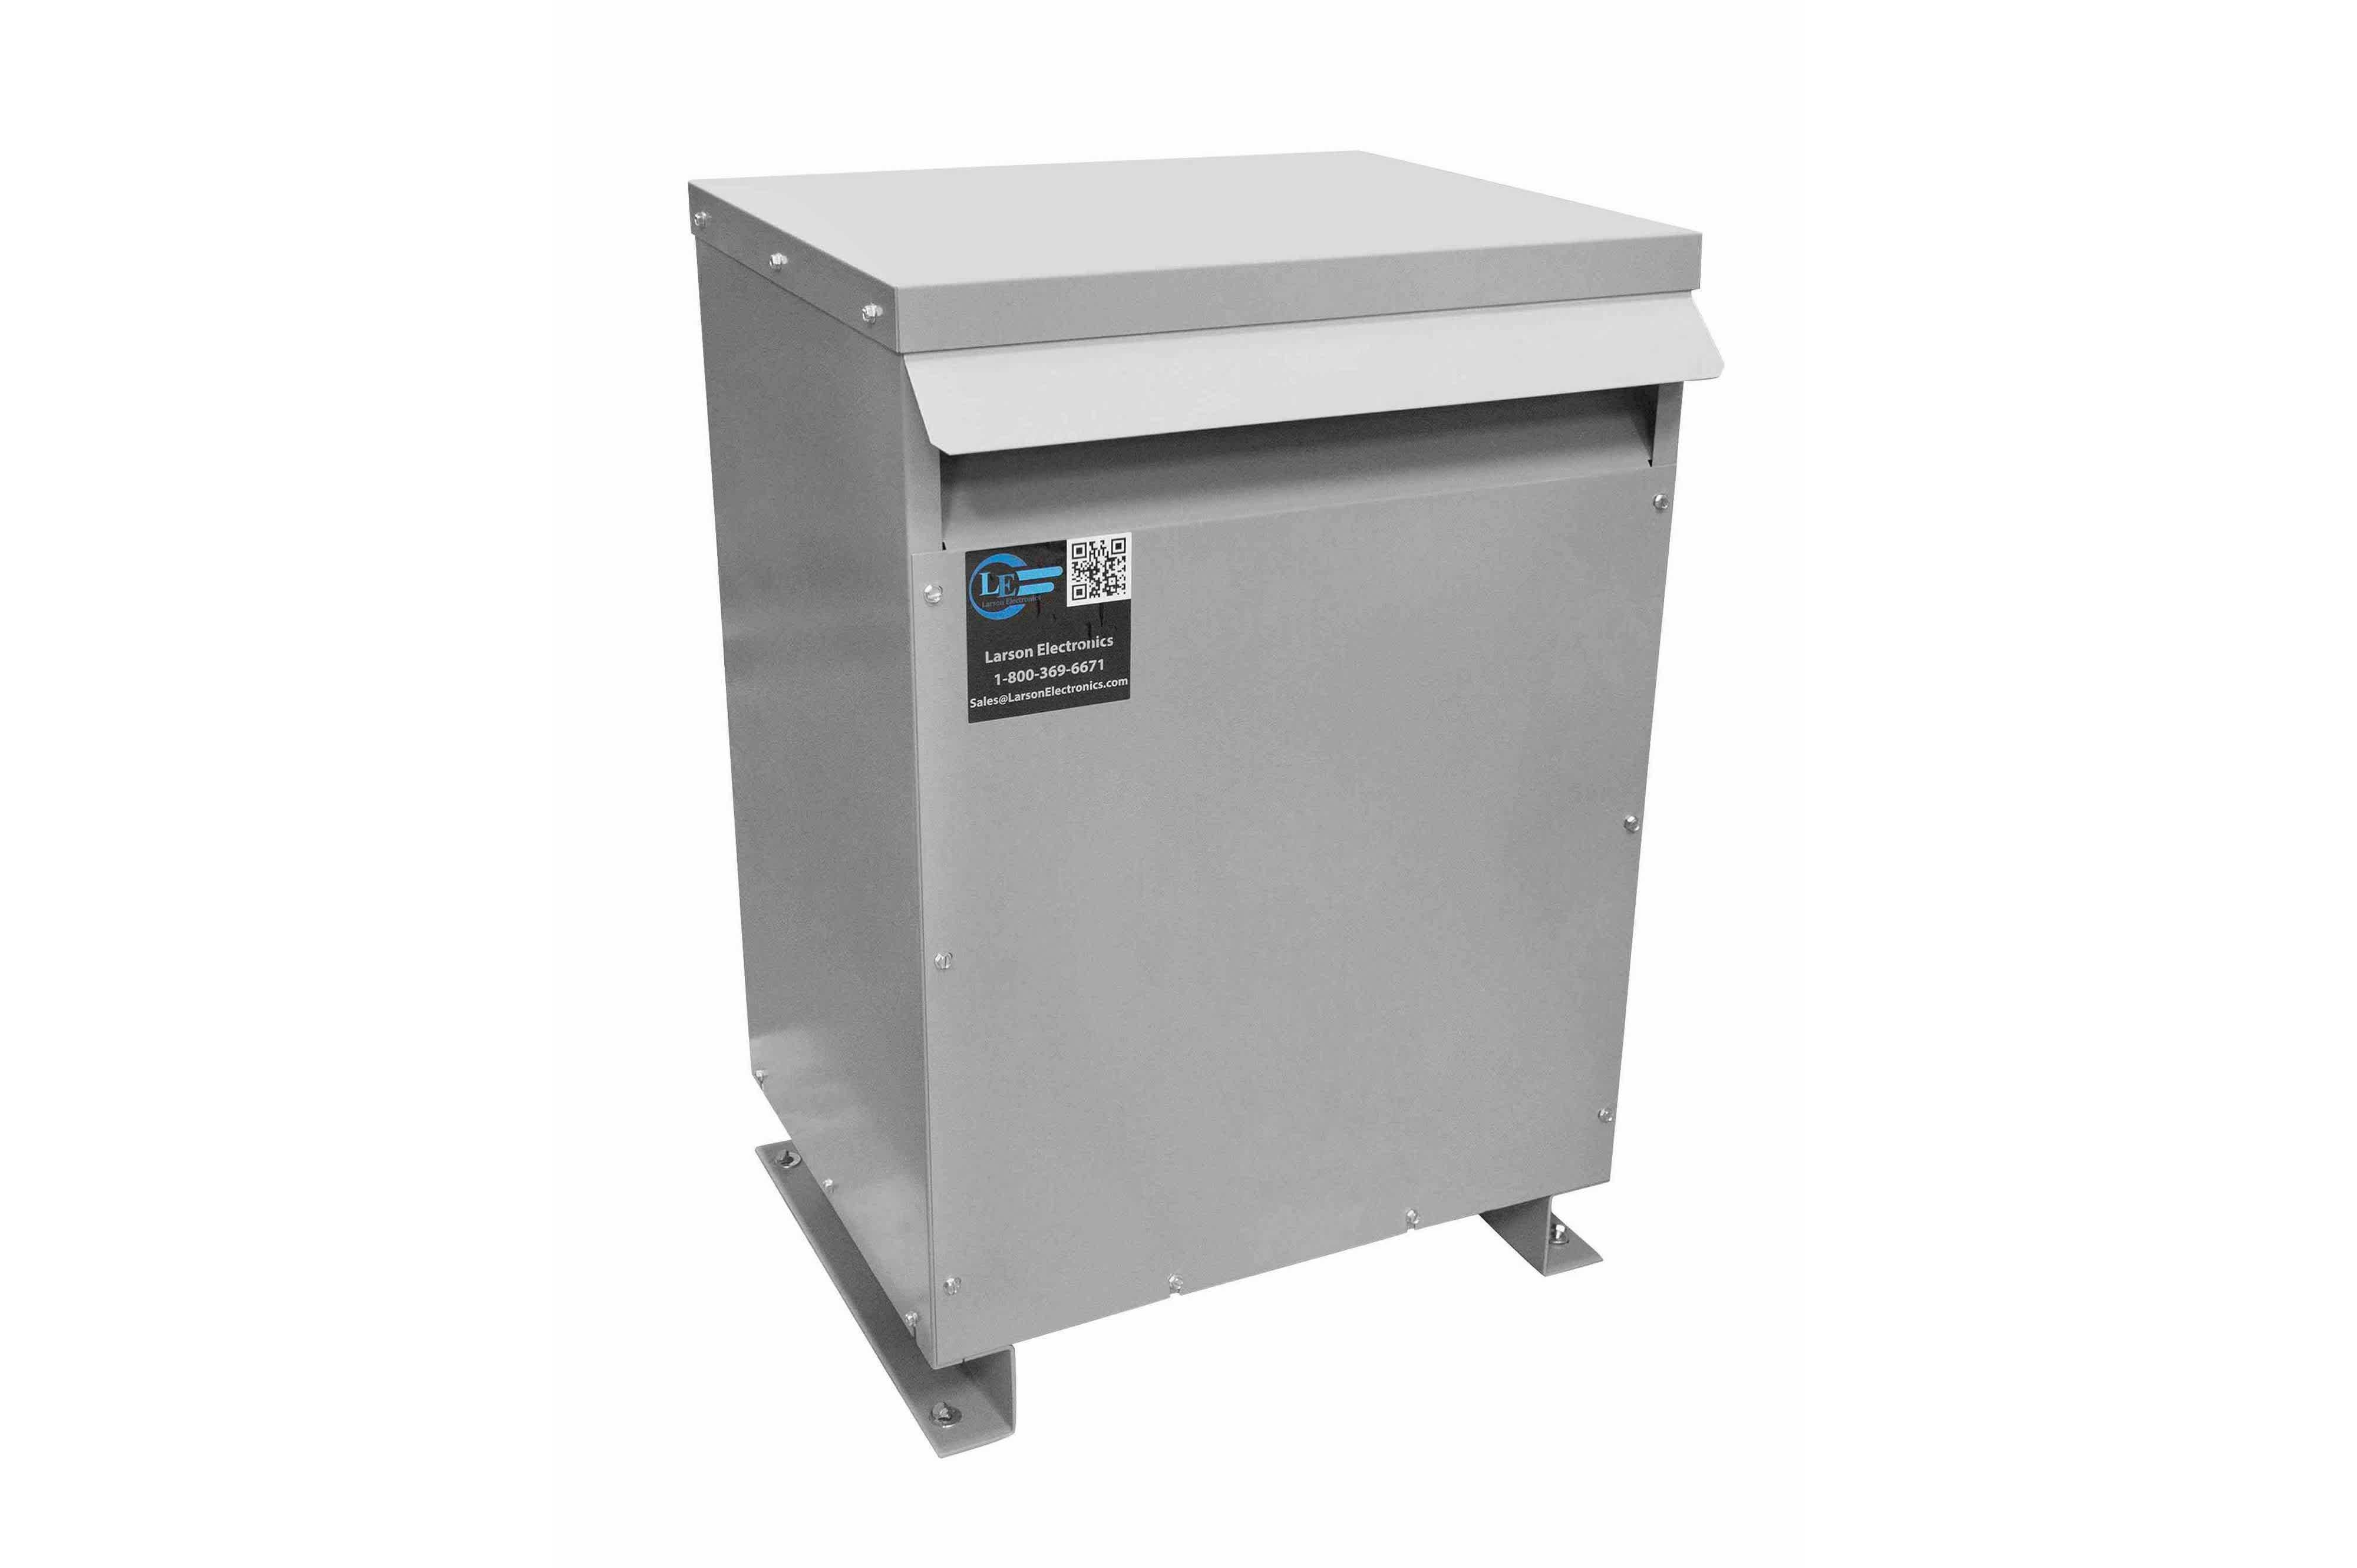 600 kVA 3PH Isolation Transformer, 380V Wye Primary, 208V Delta Secondary, N3R, Ventilated, 60 Hz